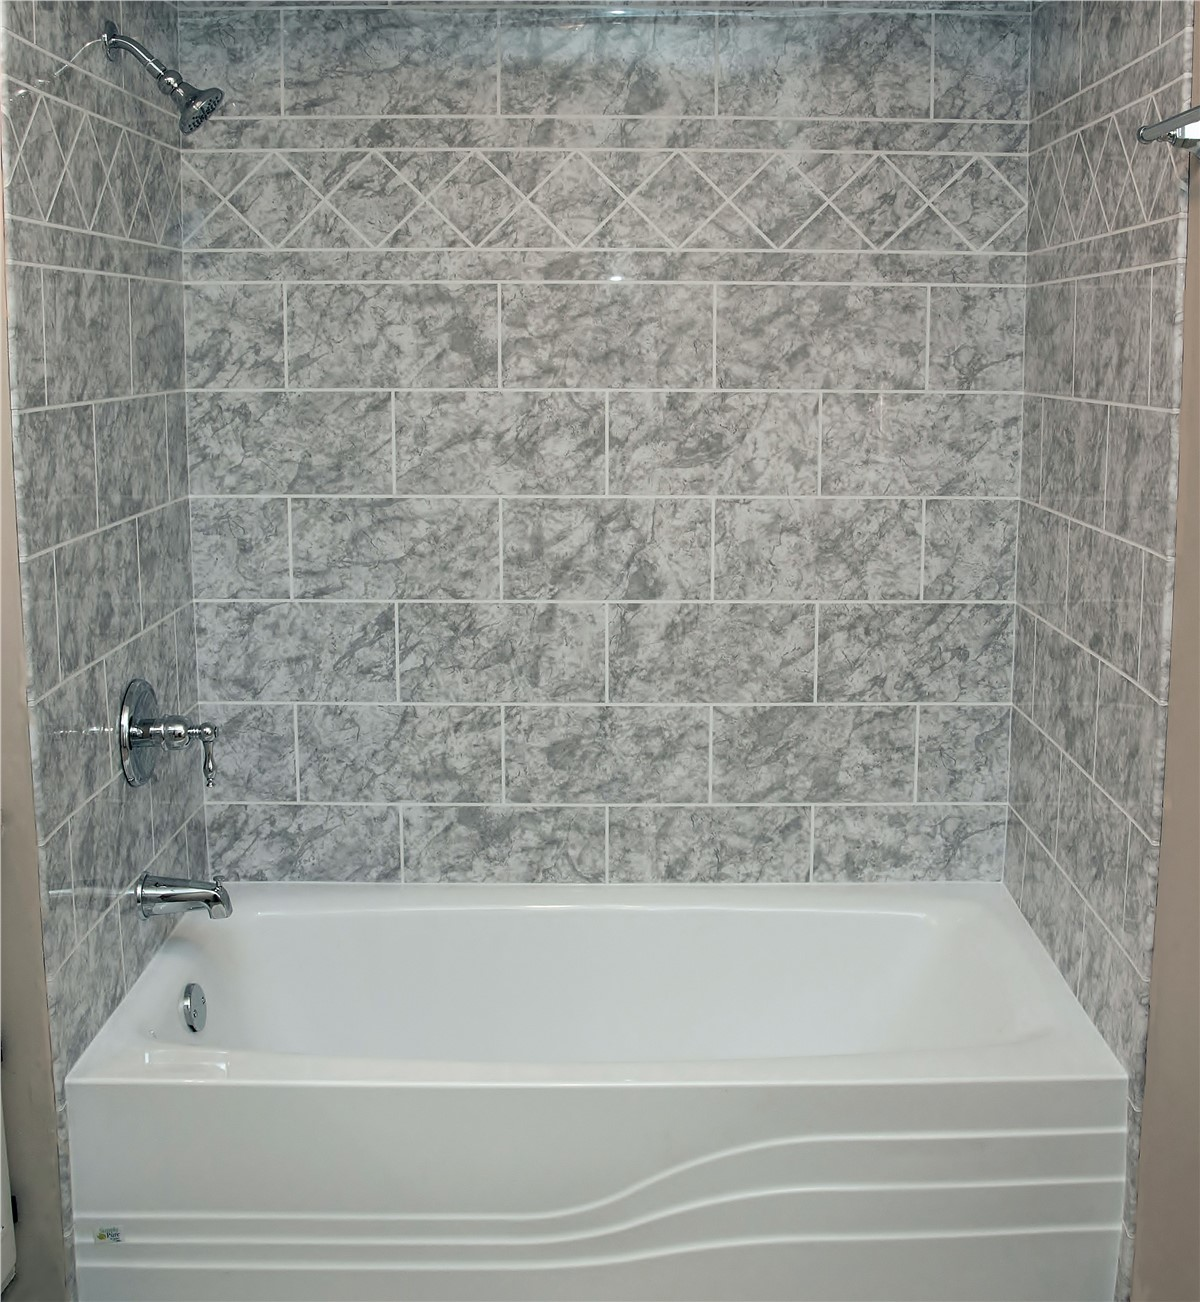 Beau Bath Wall Surrounds Photo 3